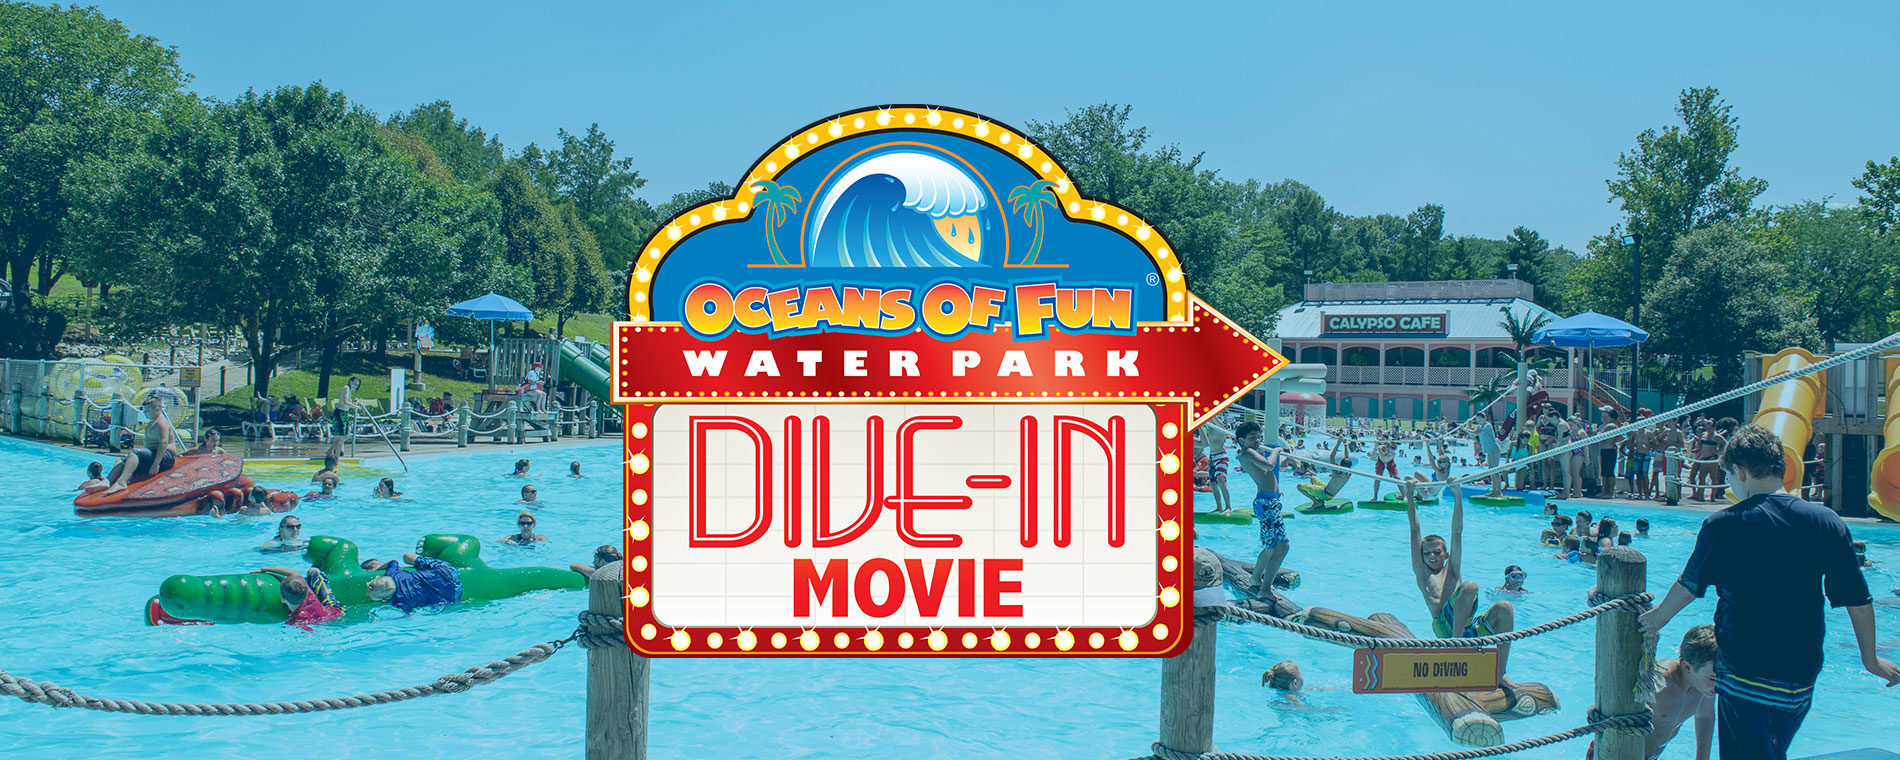 Dive-In Movies at Oceans of Fun | Movies in the Park